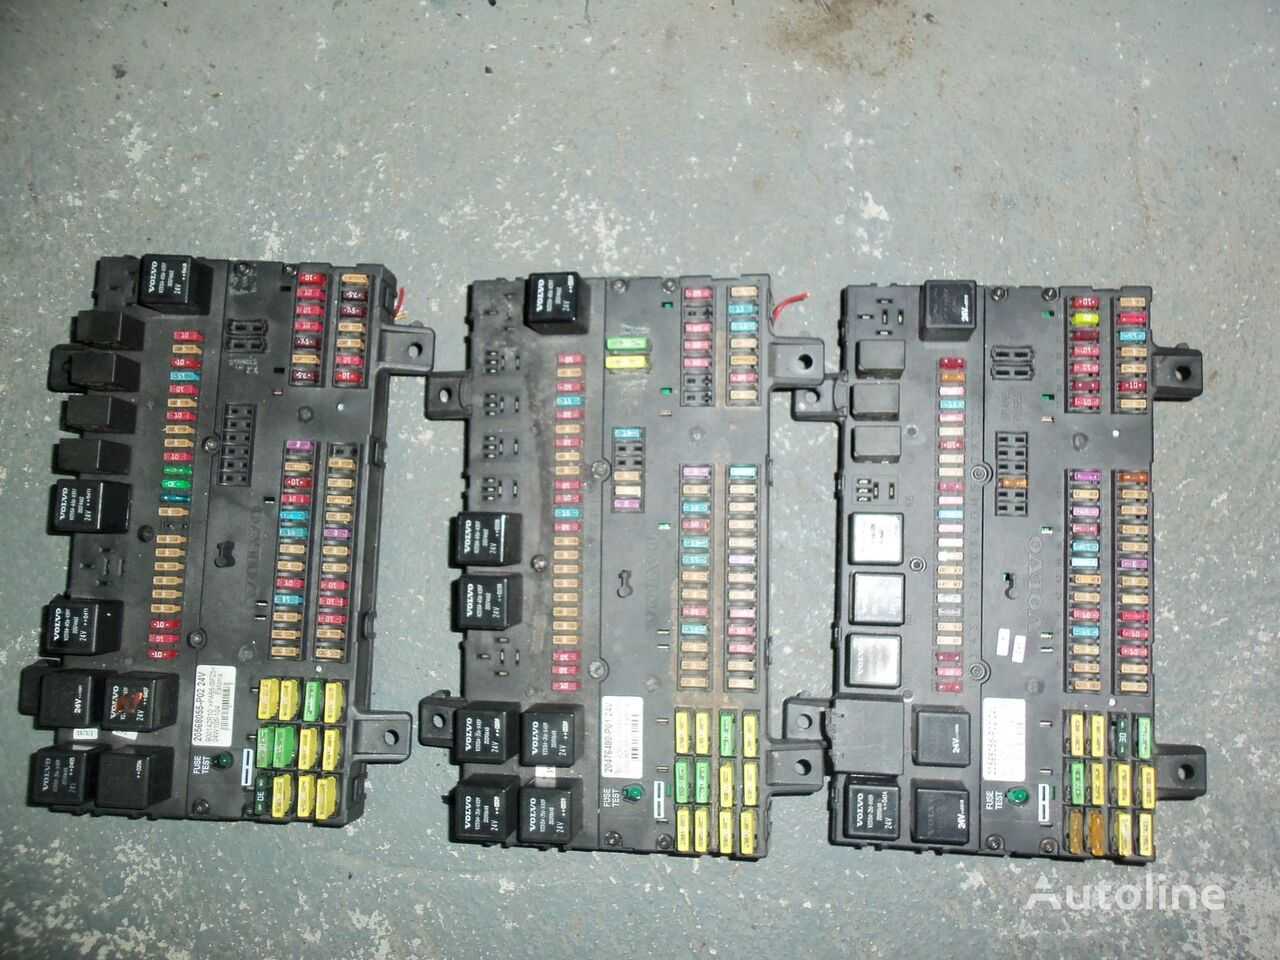 VOLVO FH13 fuse and relay center, central electrical box 20568055, 21732199 fuse block for VOLVO FH13 tractor unit